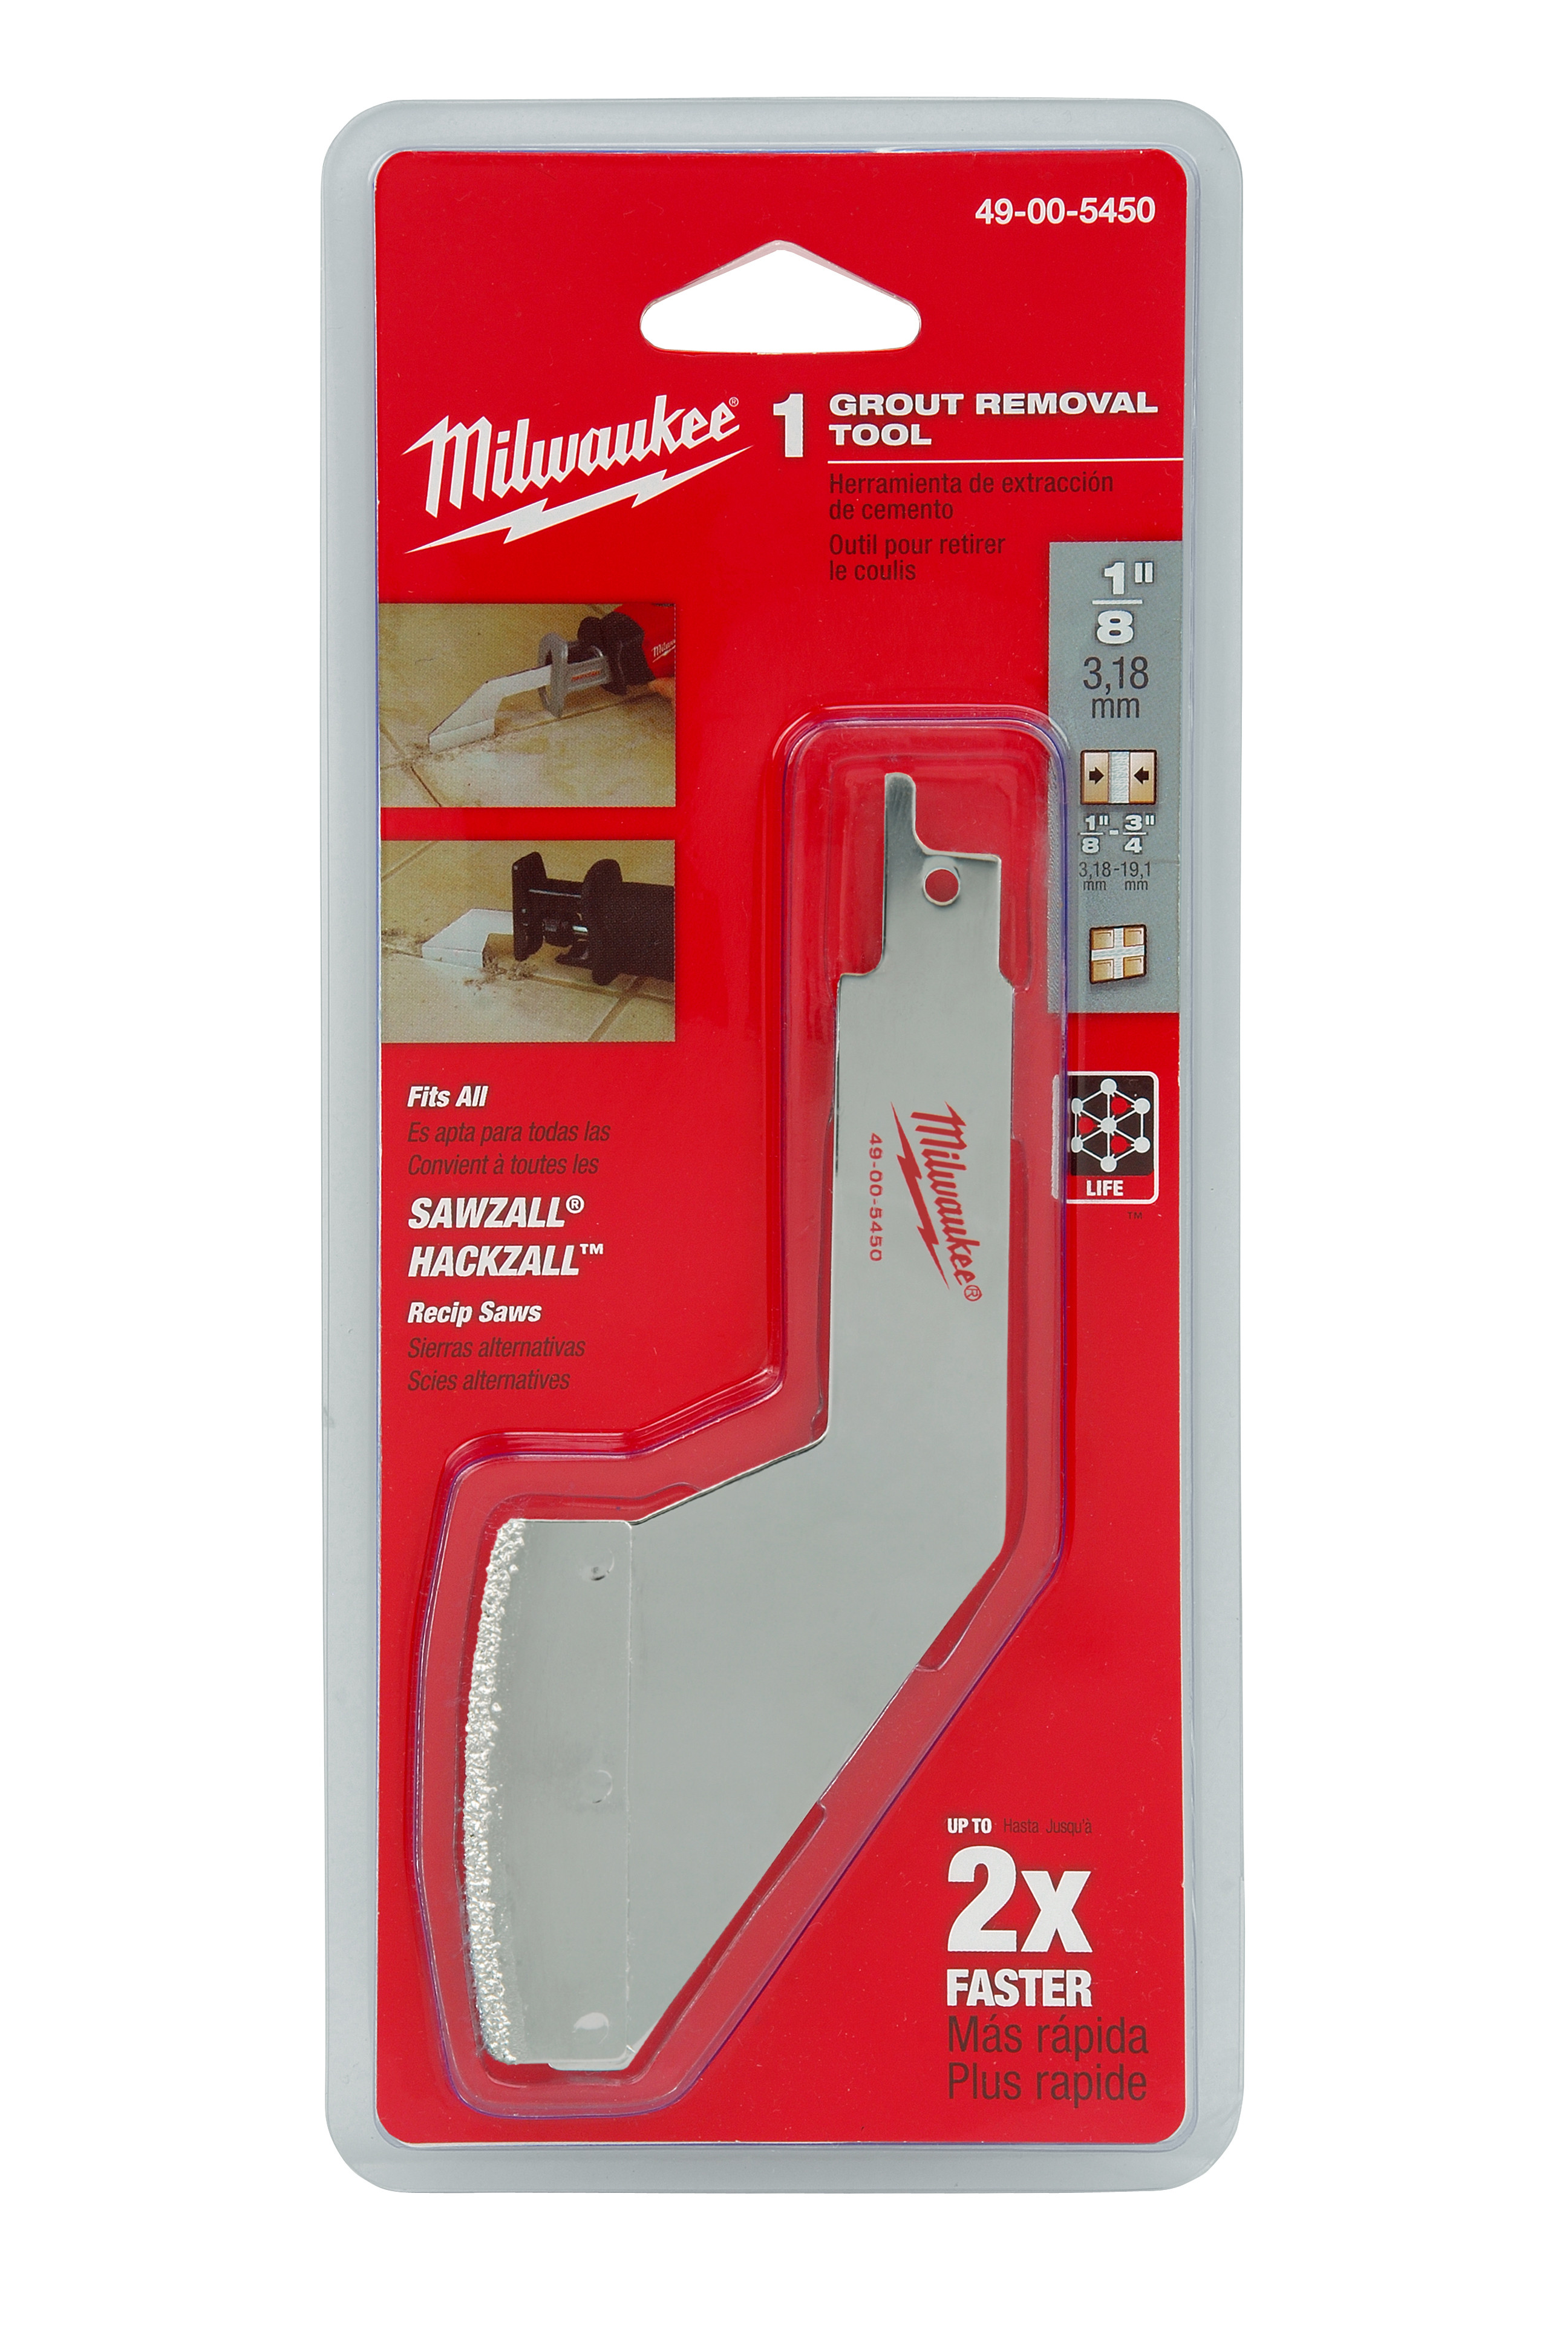 Milwaukee® SAWZALL® 49-00-5450 Grout Removal Tool